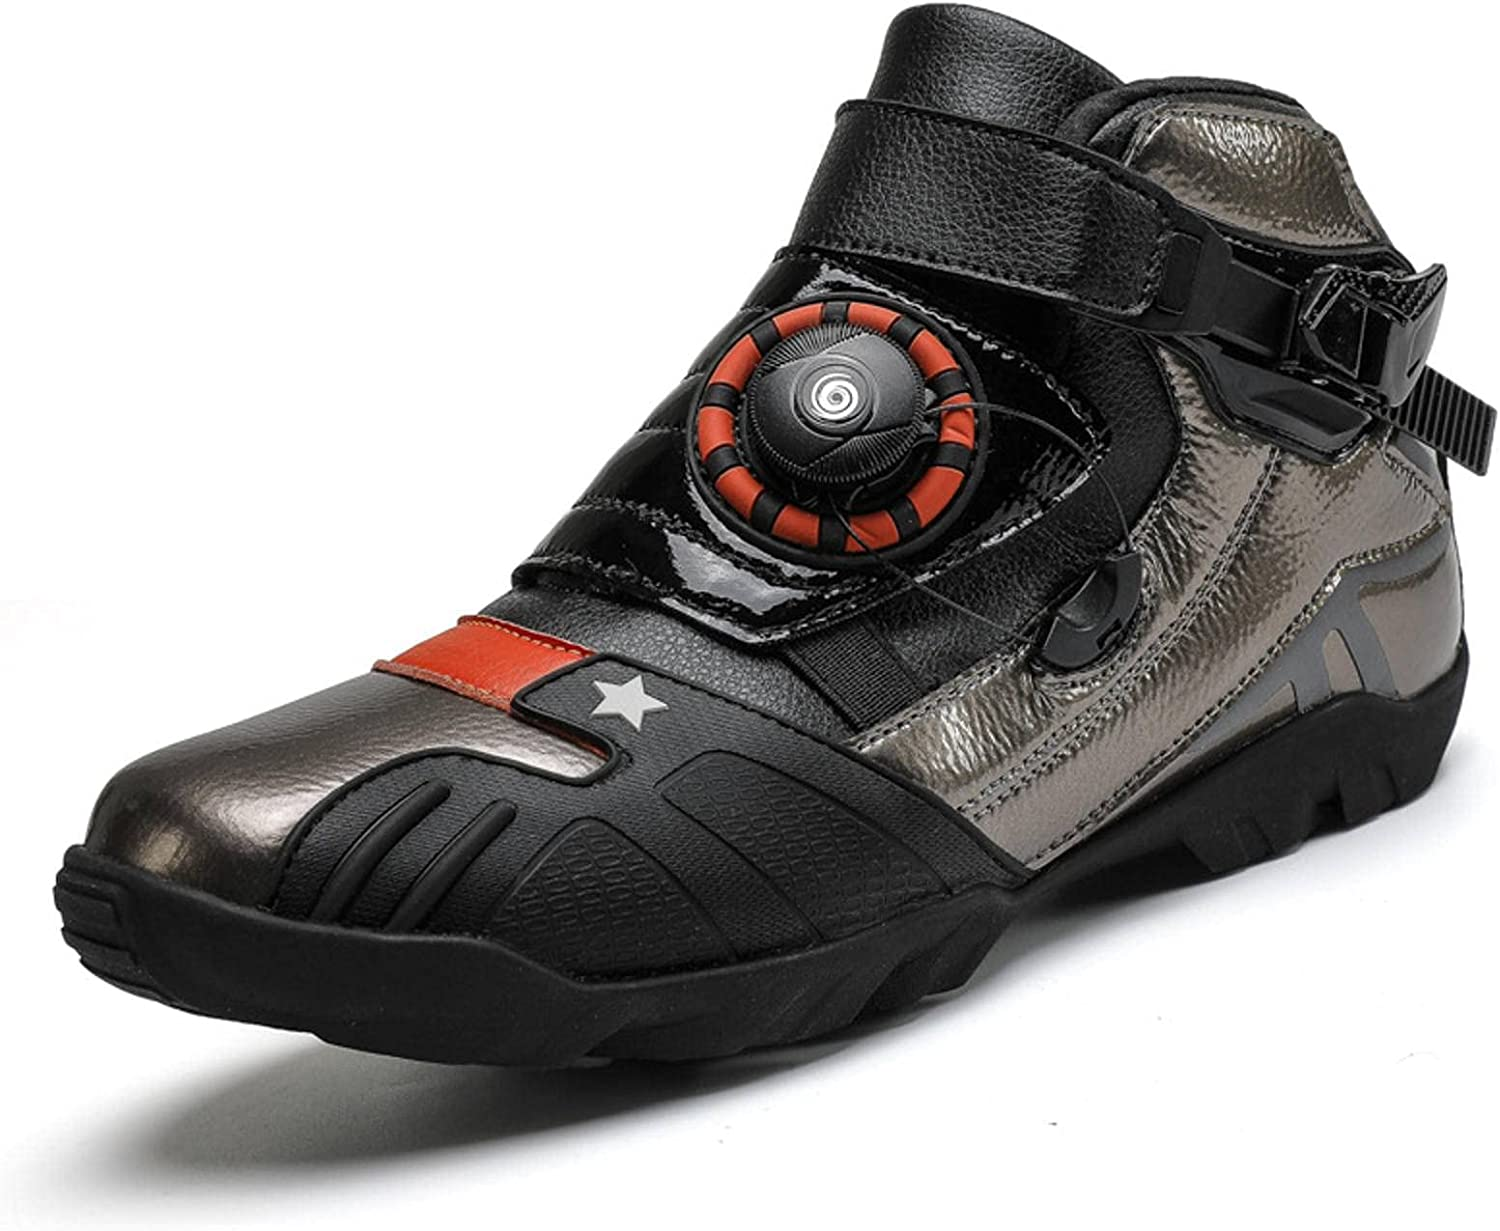 N\C 1 year warranty Bicycle Low price Shoes Sports Cycling Motorcycle